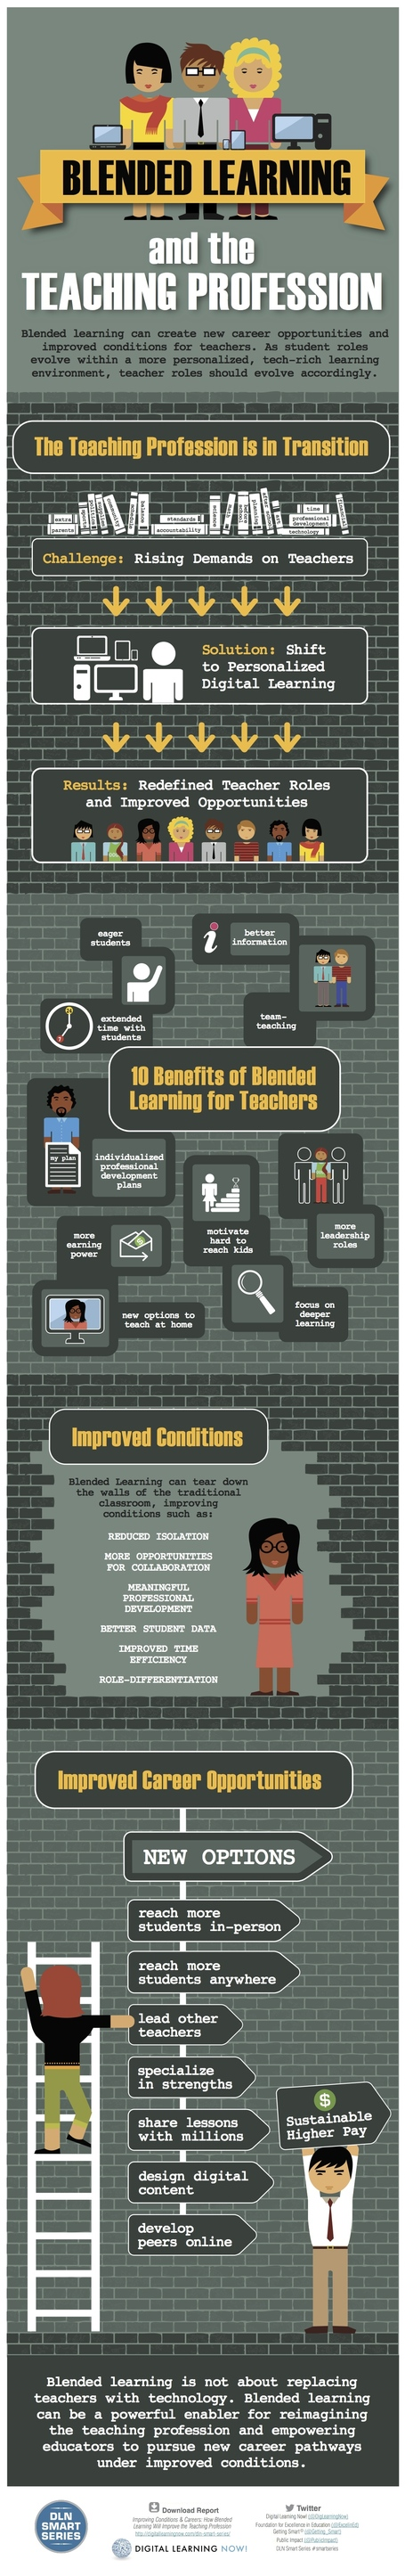 10 Reasons Teachers should Try Blended Learning [Infographic] | Education & Technology News | Scoop.it